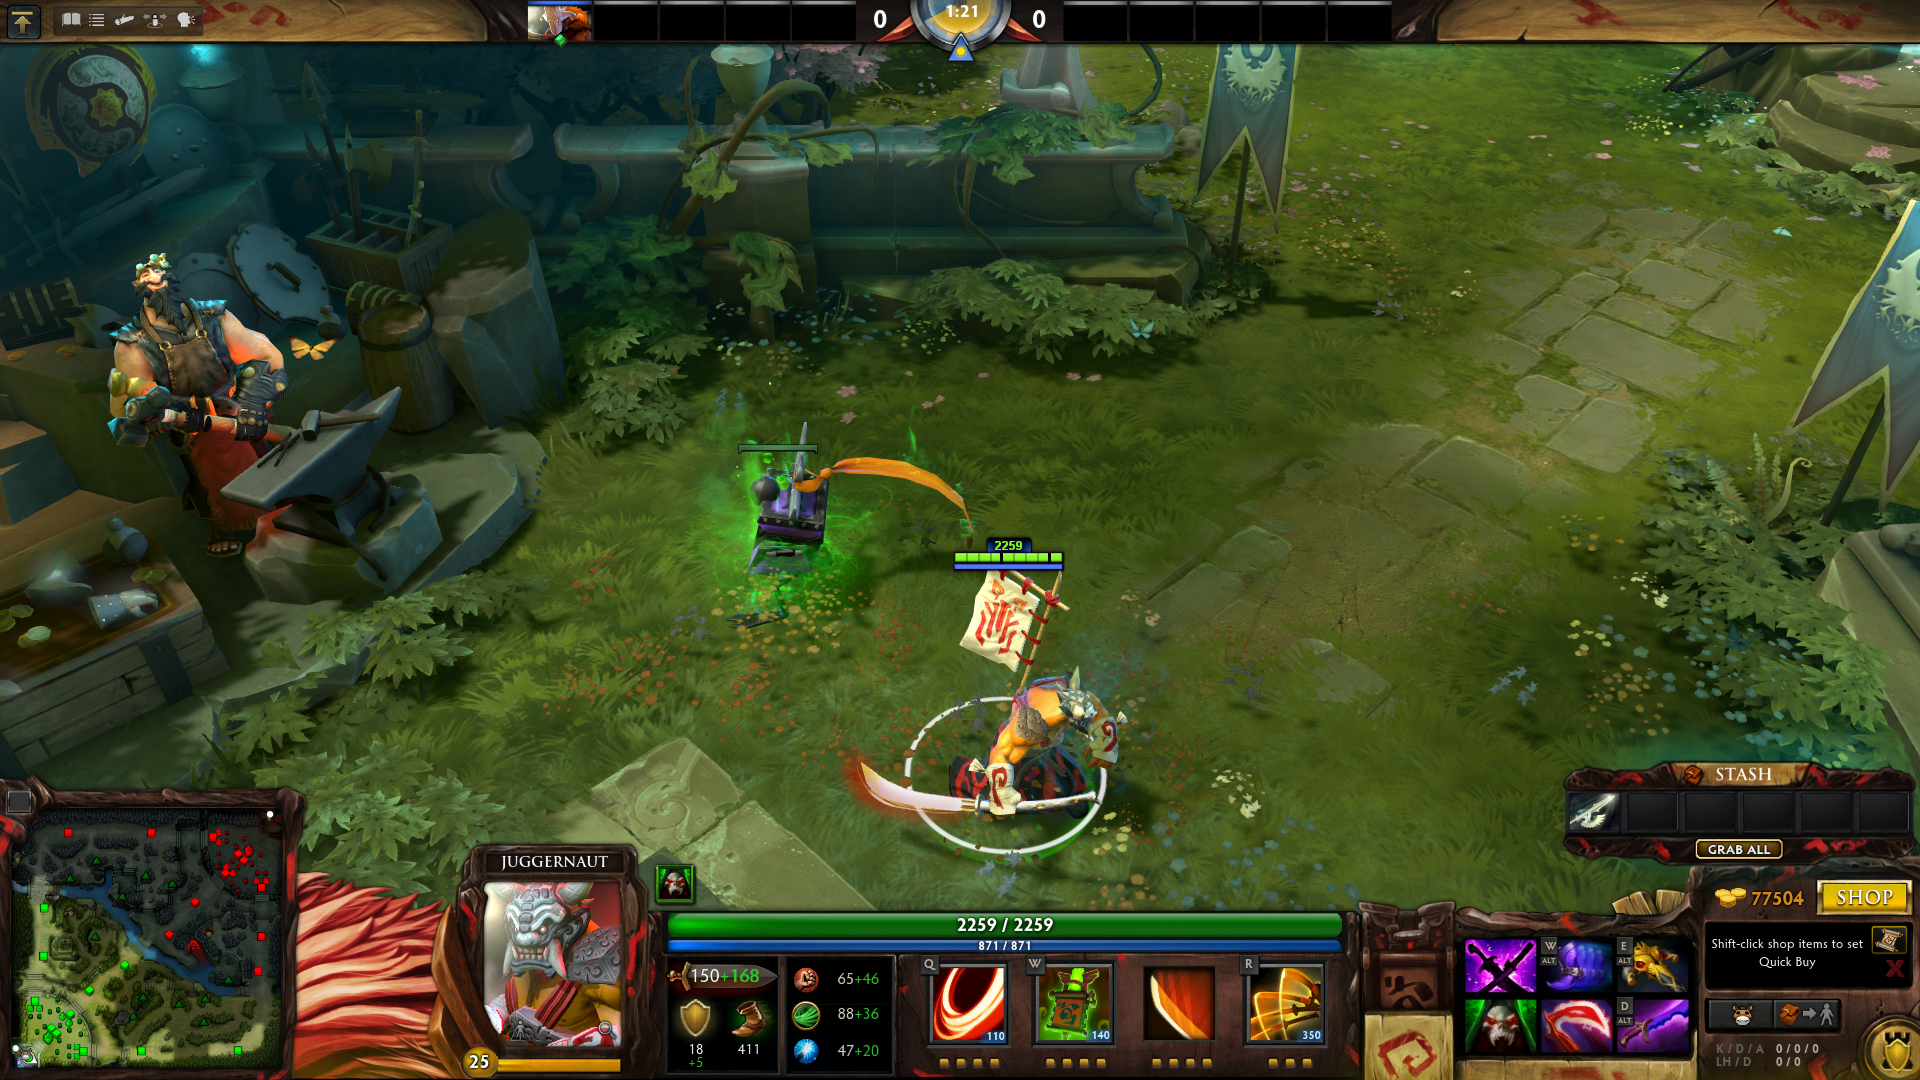 kendo house juggernaut hud updated dota 2 by silver fate on